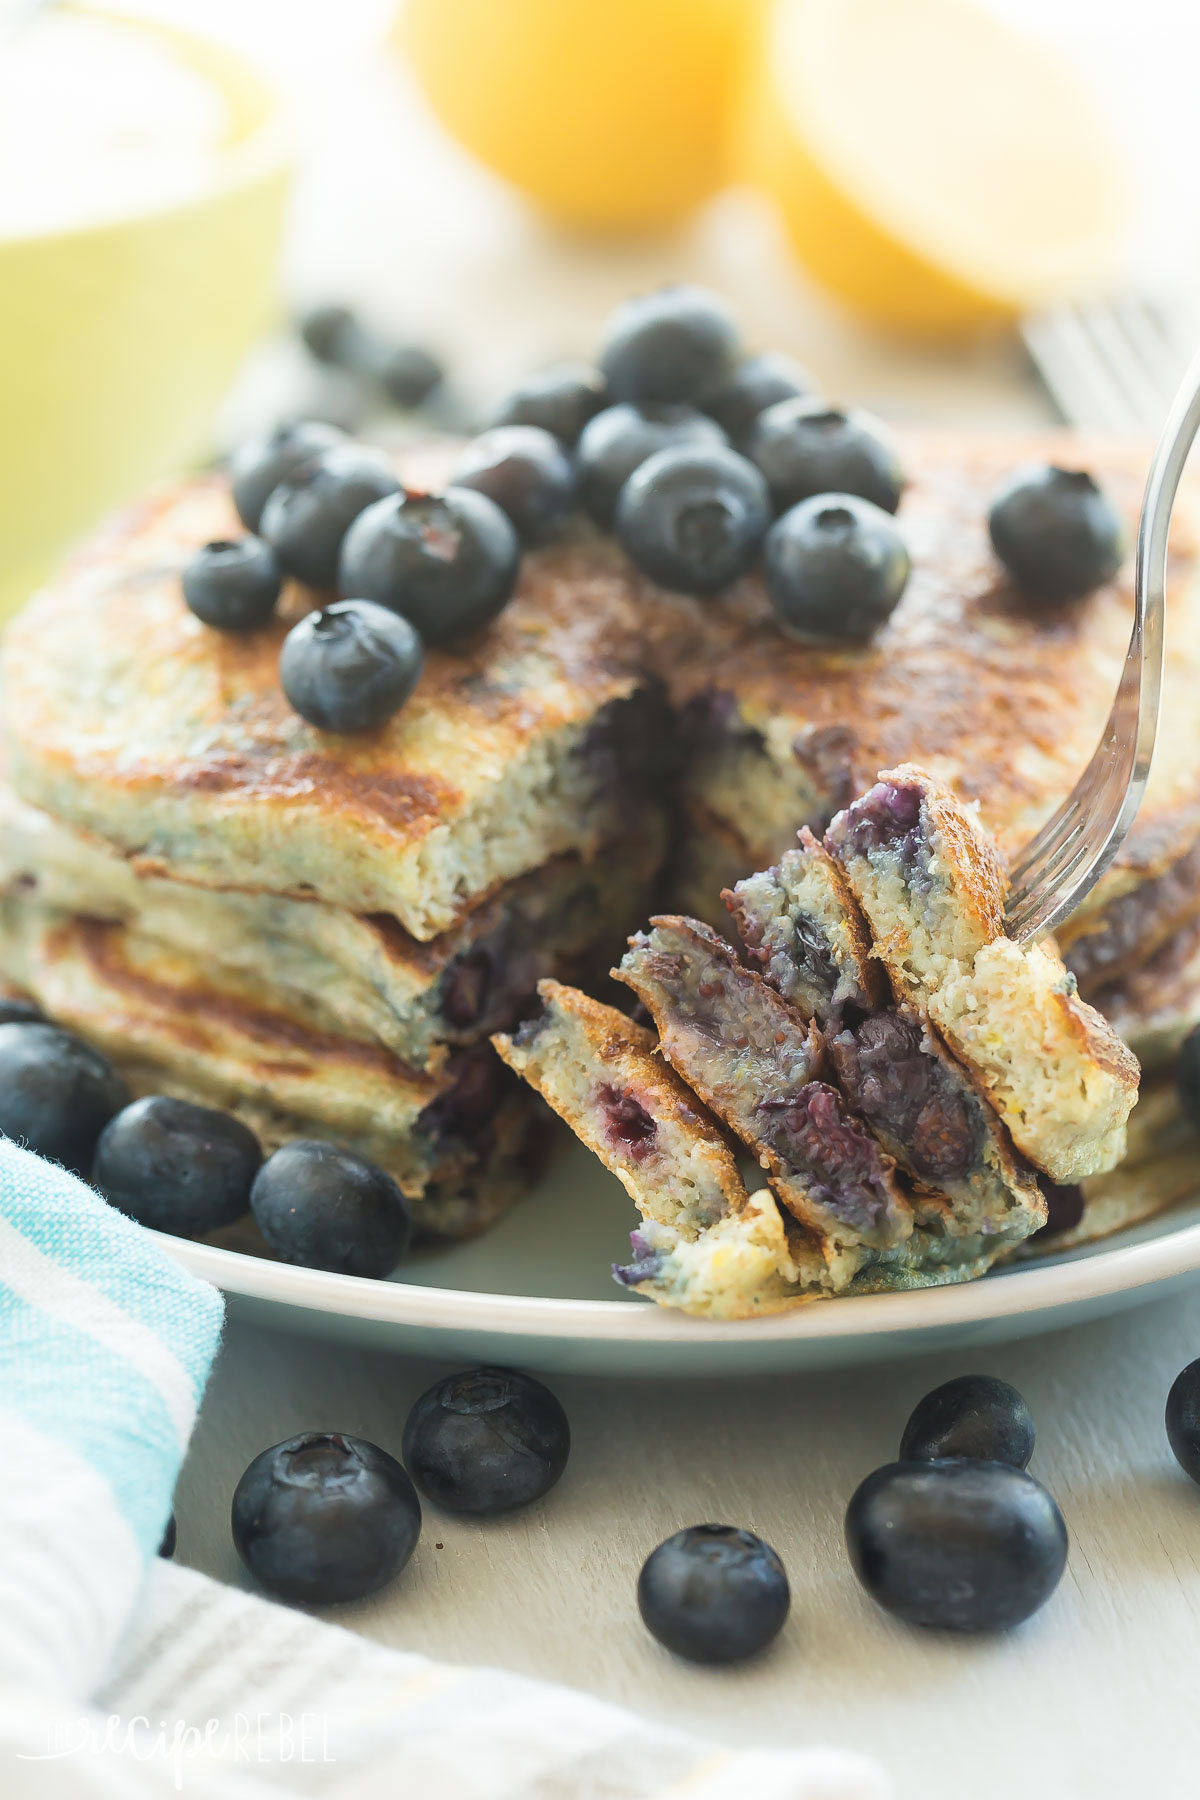 lemon-blueberry-greek-yogurt-pancakes-www-thereciperebel-com-7-of-9